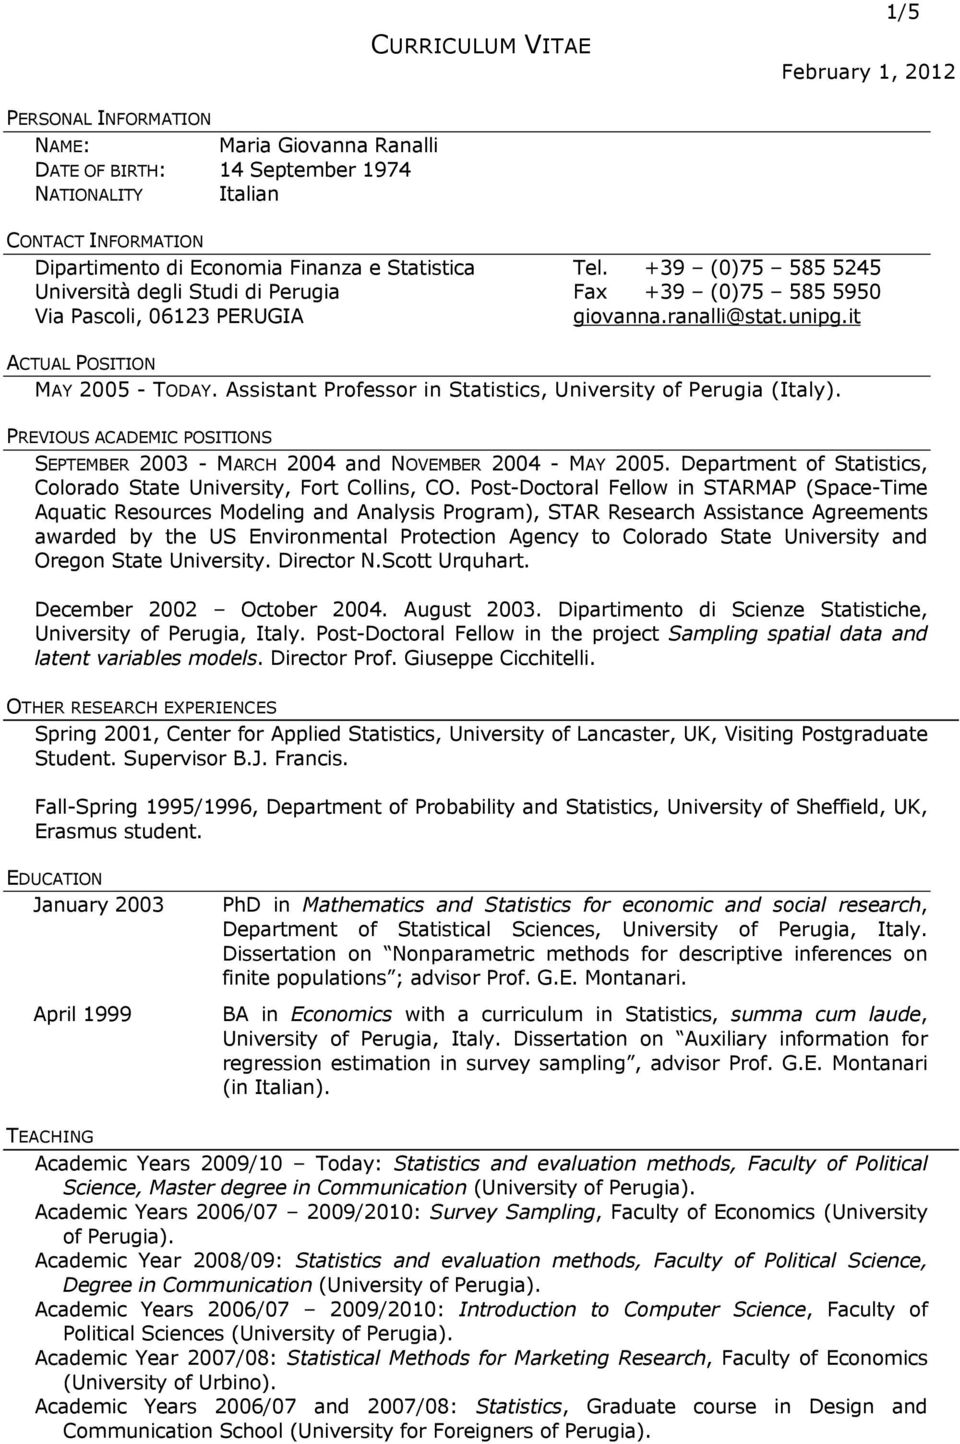 Assistant Professor in Statistics, University of Perugia (Italy). PREVIOUS ACADEMIC POSITIONS SEPTEMBER 2003 - MARCH 2004 and NOVEMBER 2004 - MAY 2005.